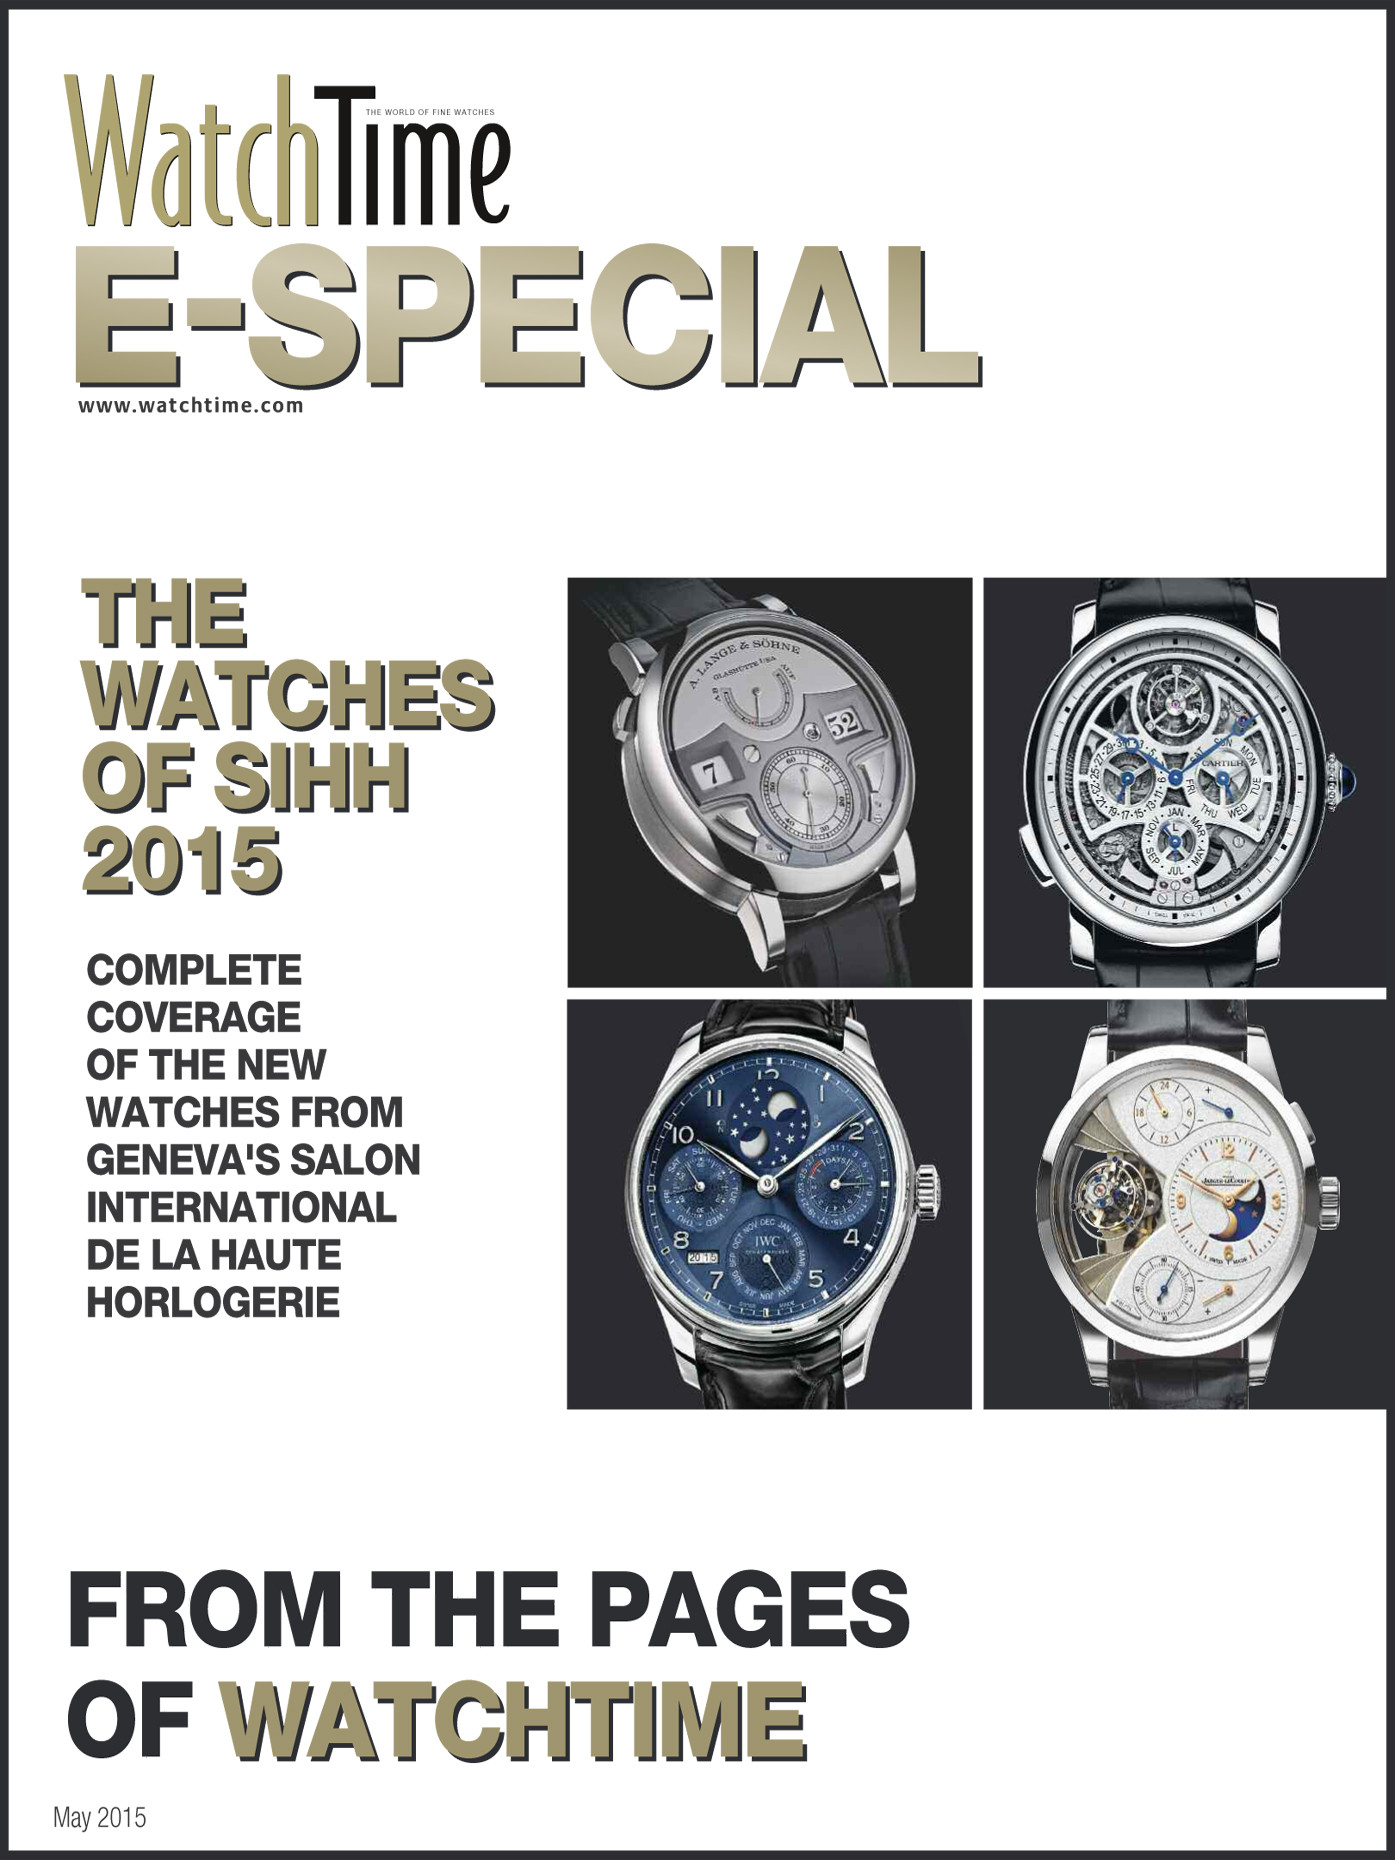 WatchTime E-Special SIHH 2015